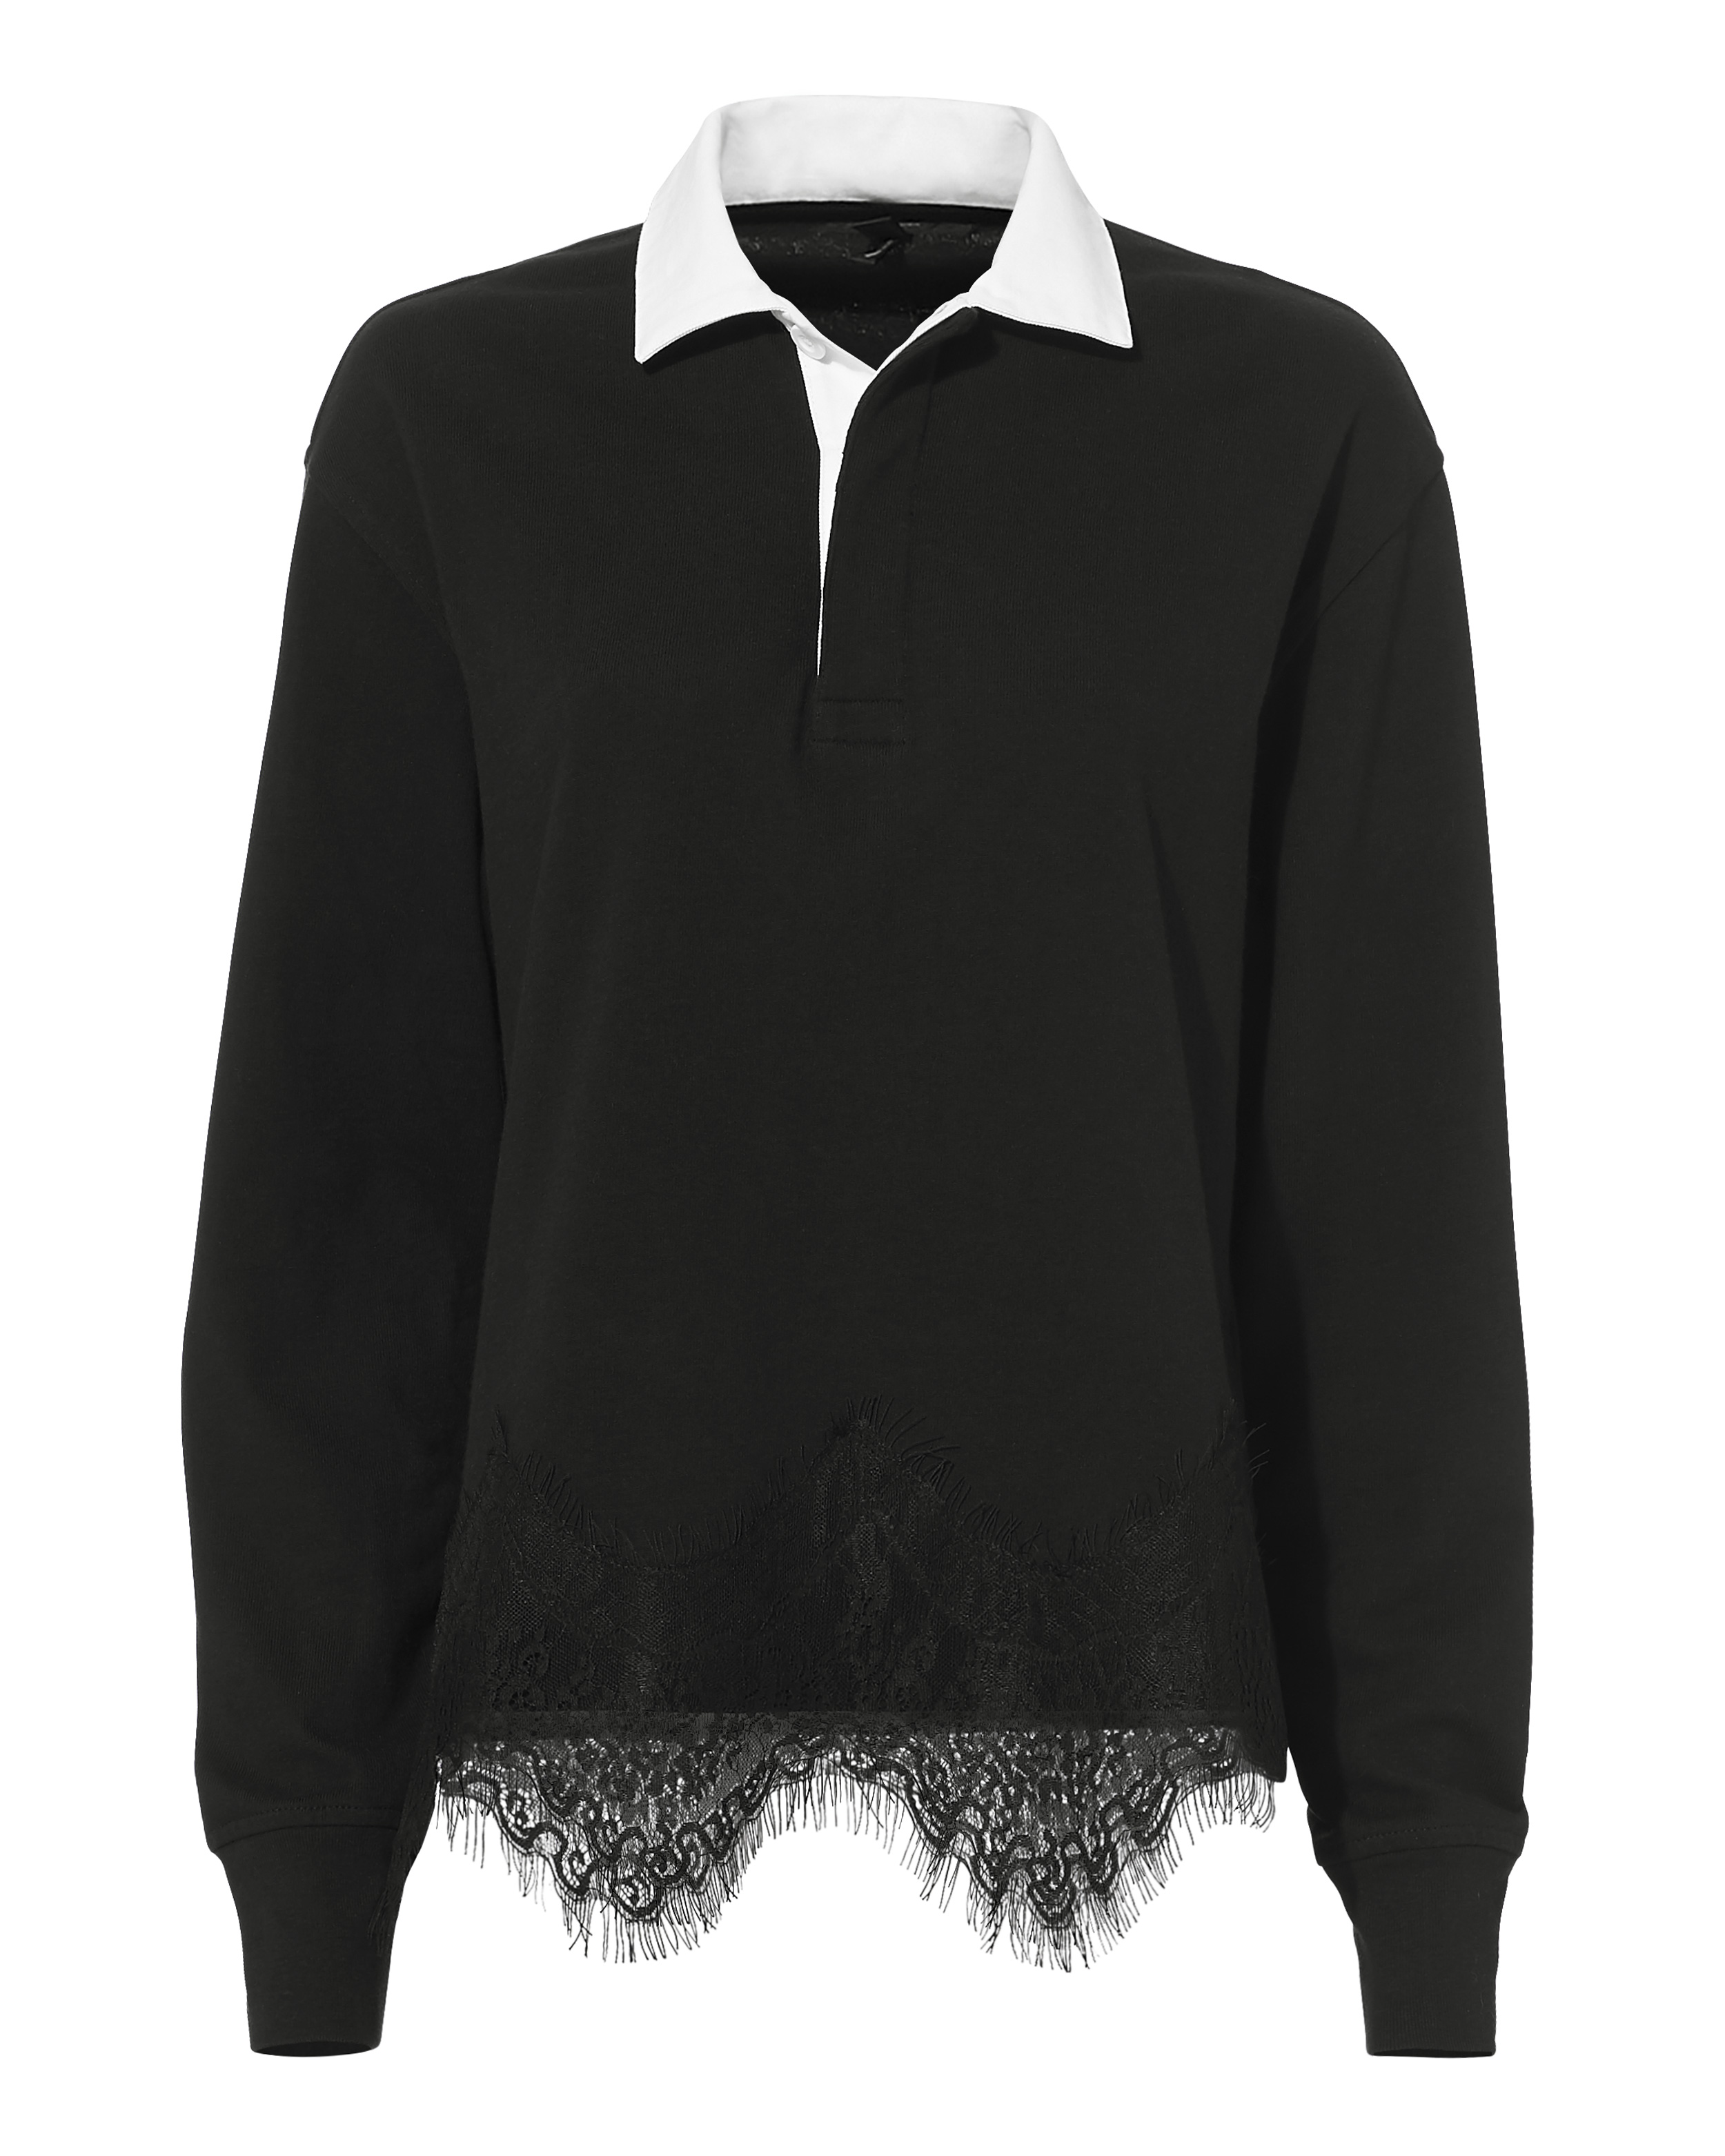 Lace Rugby Top by Rag & Bone